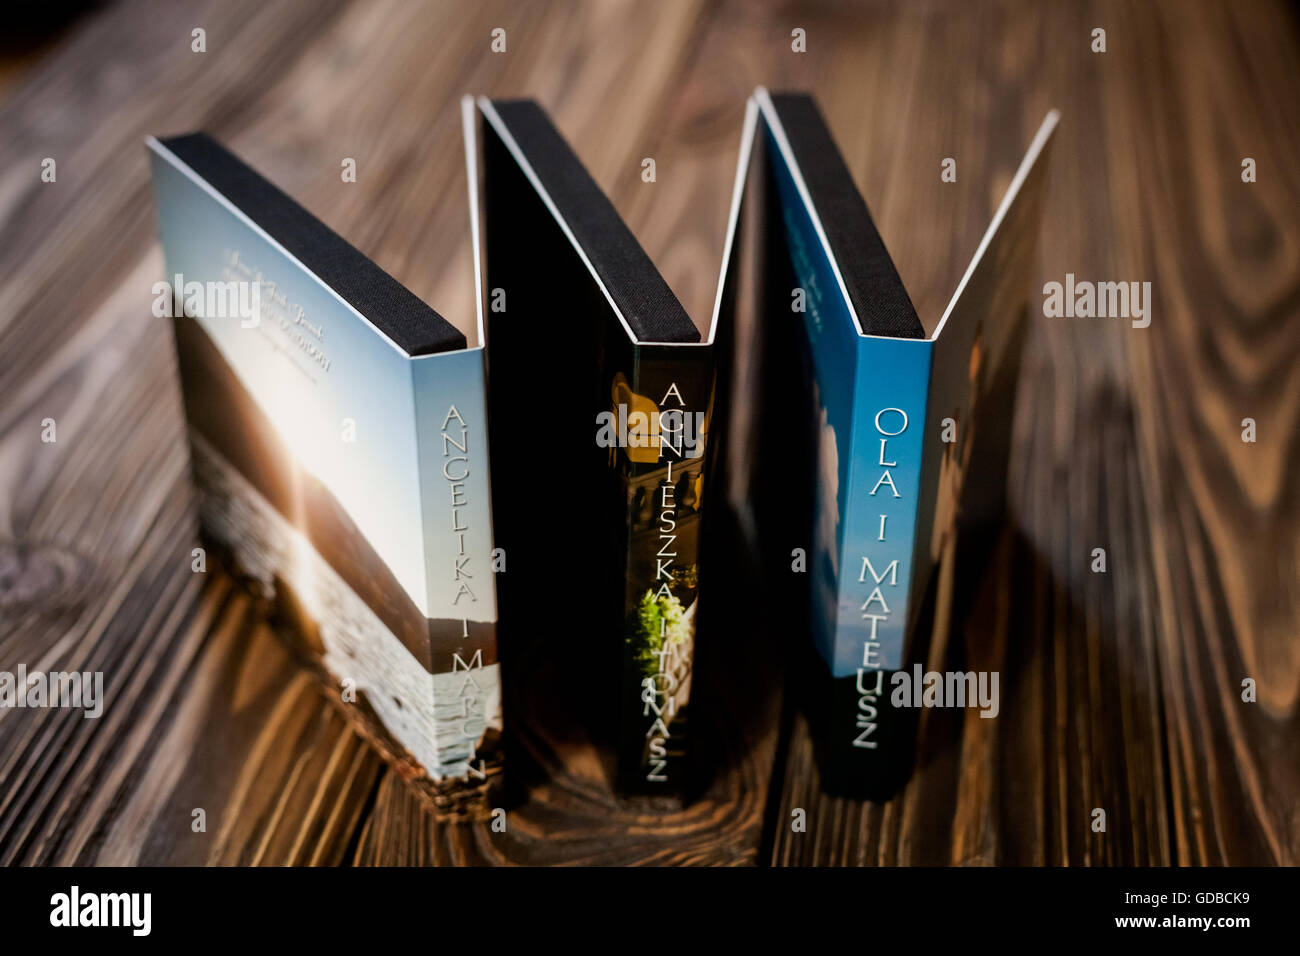 Closeup of opened wedding pendrive or dvd rom package. - Stock Image